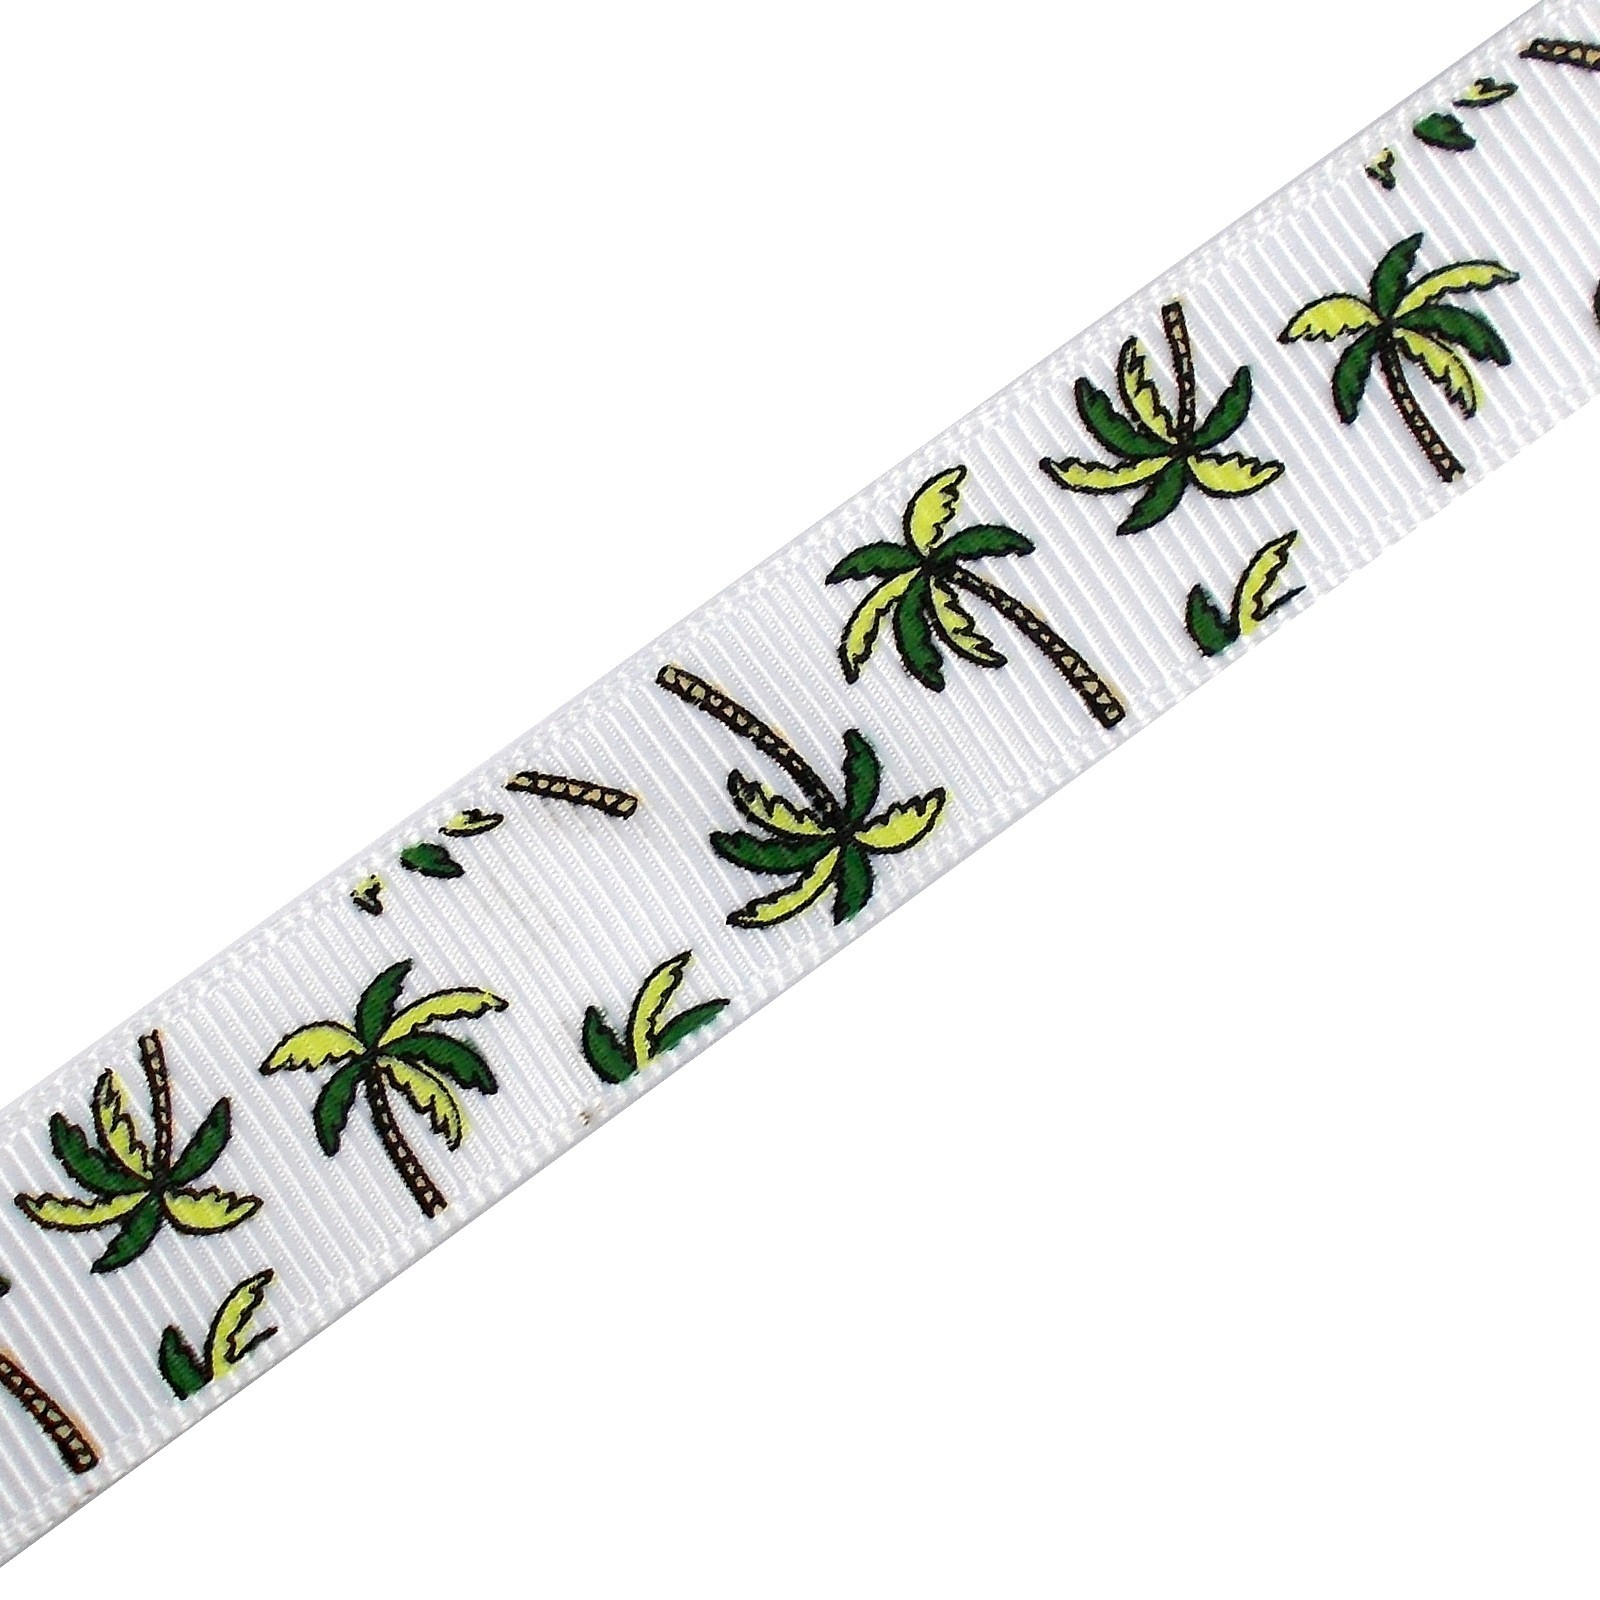 Tropical Print Grosgrain Ribbon 16mm Wide Palm Trees 2 metre length